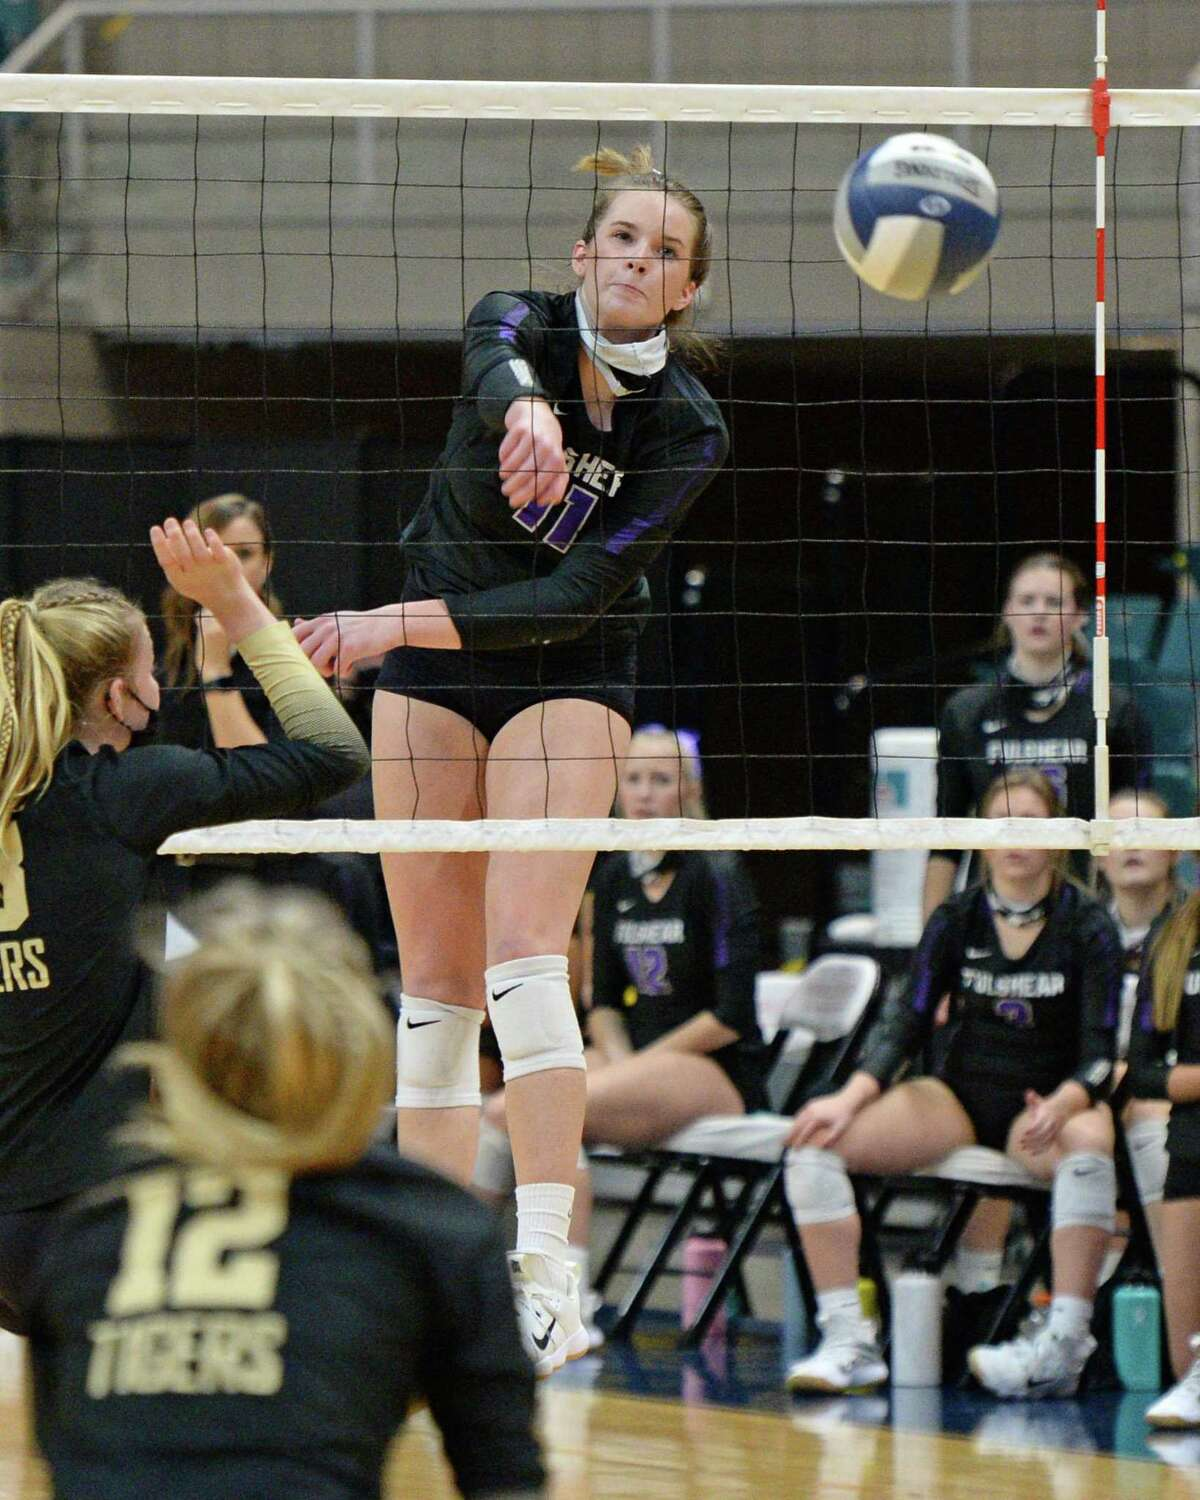 Ellie Echter (11) of Fulshear spikes a ball during the third set of the Class 5A state semifinal volleyball match between the Fulshear Chargers and the Dripping Springs Tigers. Echter was named the District 24-5A most valuable player.